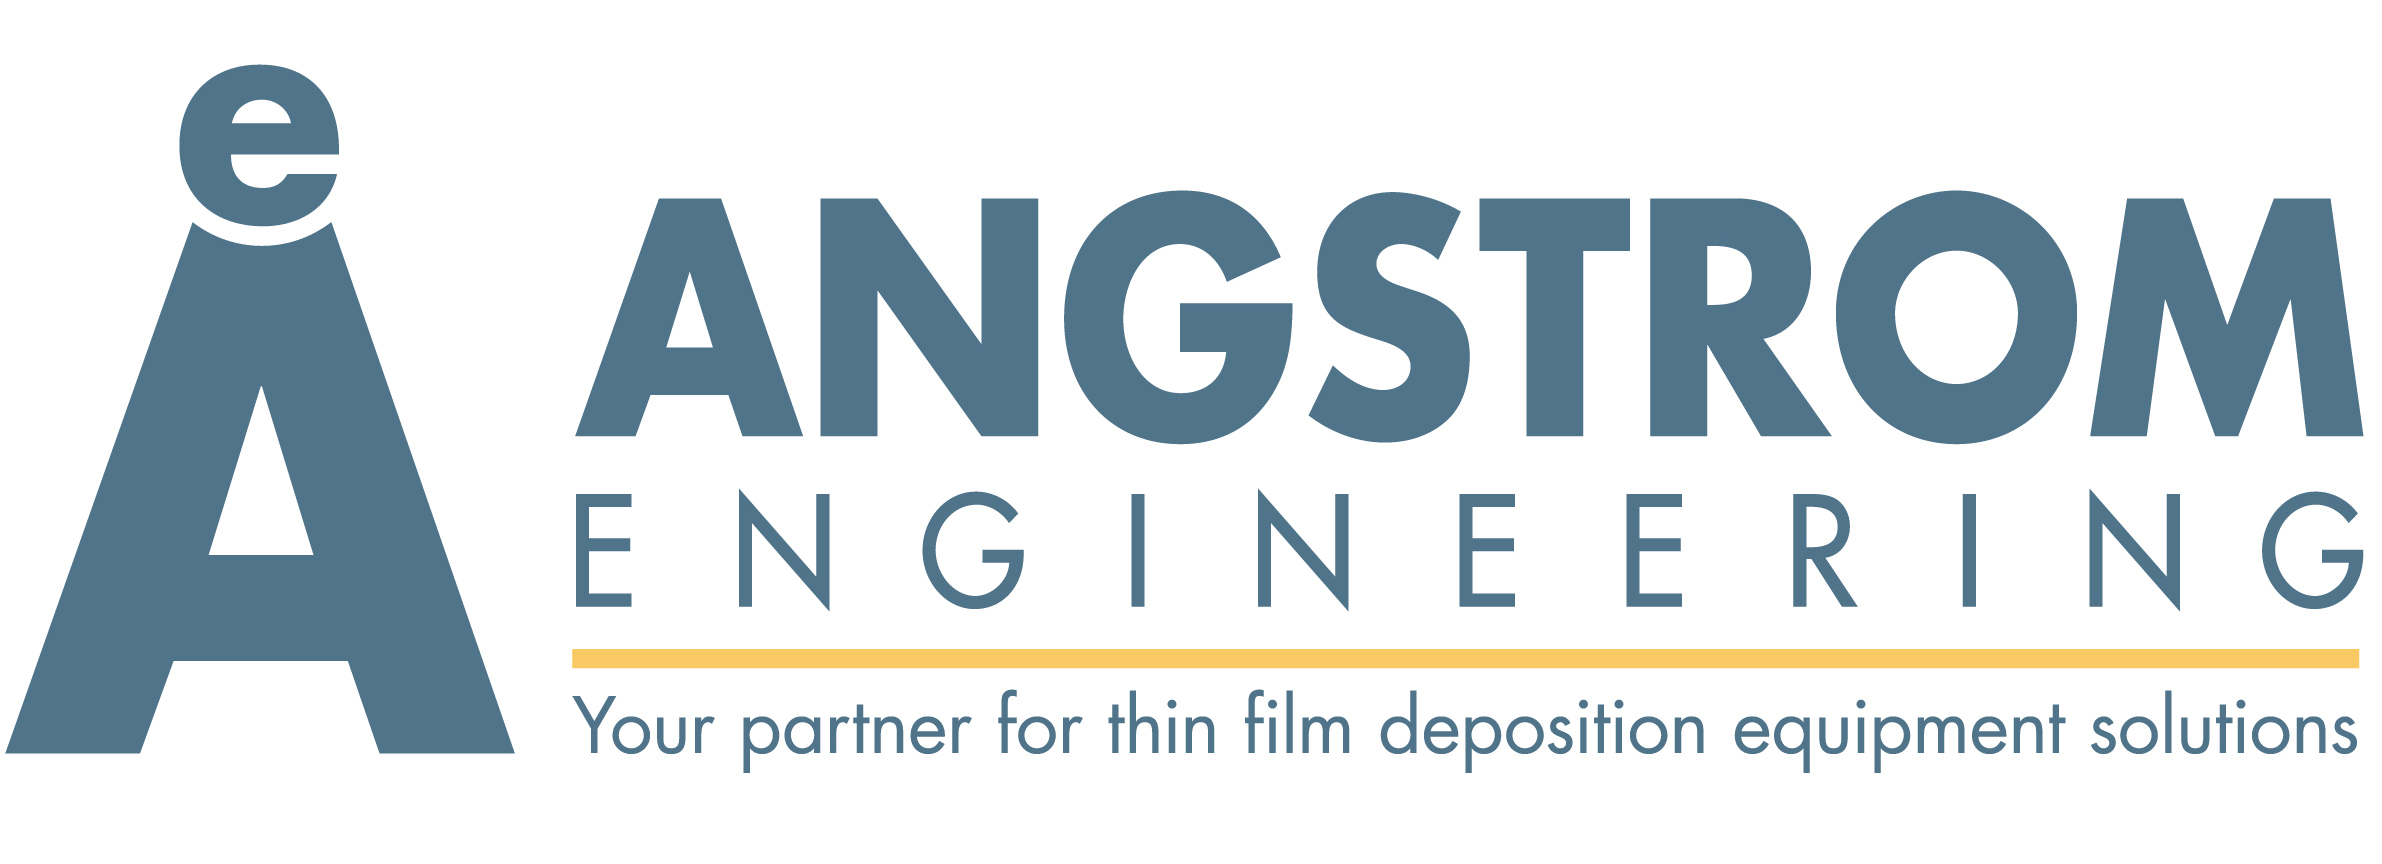 Angstrom Engineering logo, links to Angstrom website